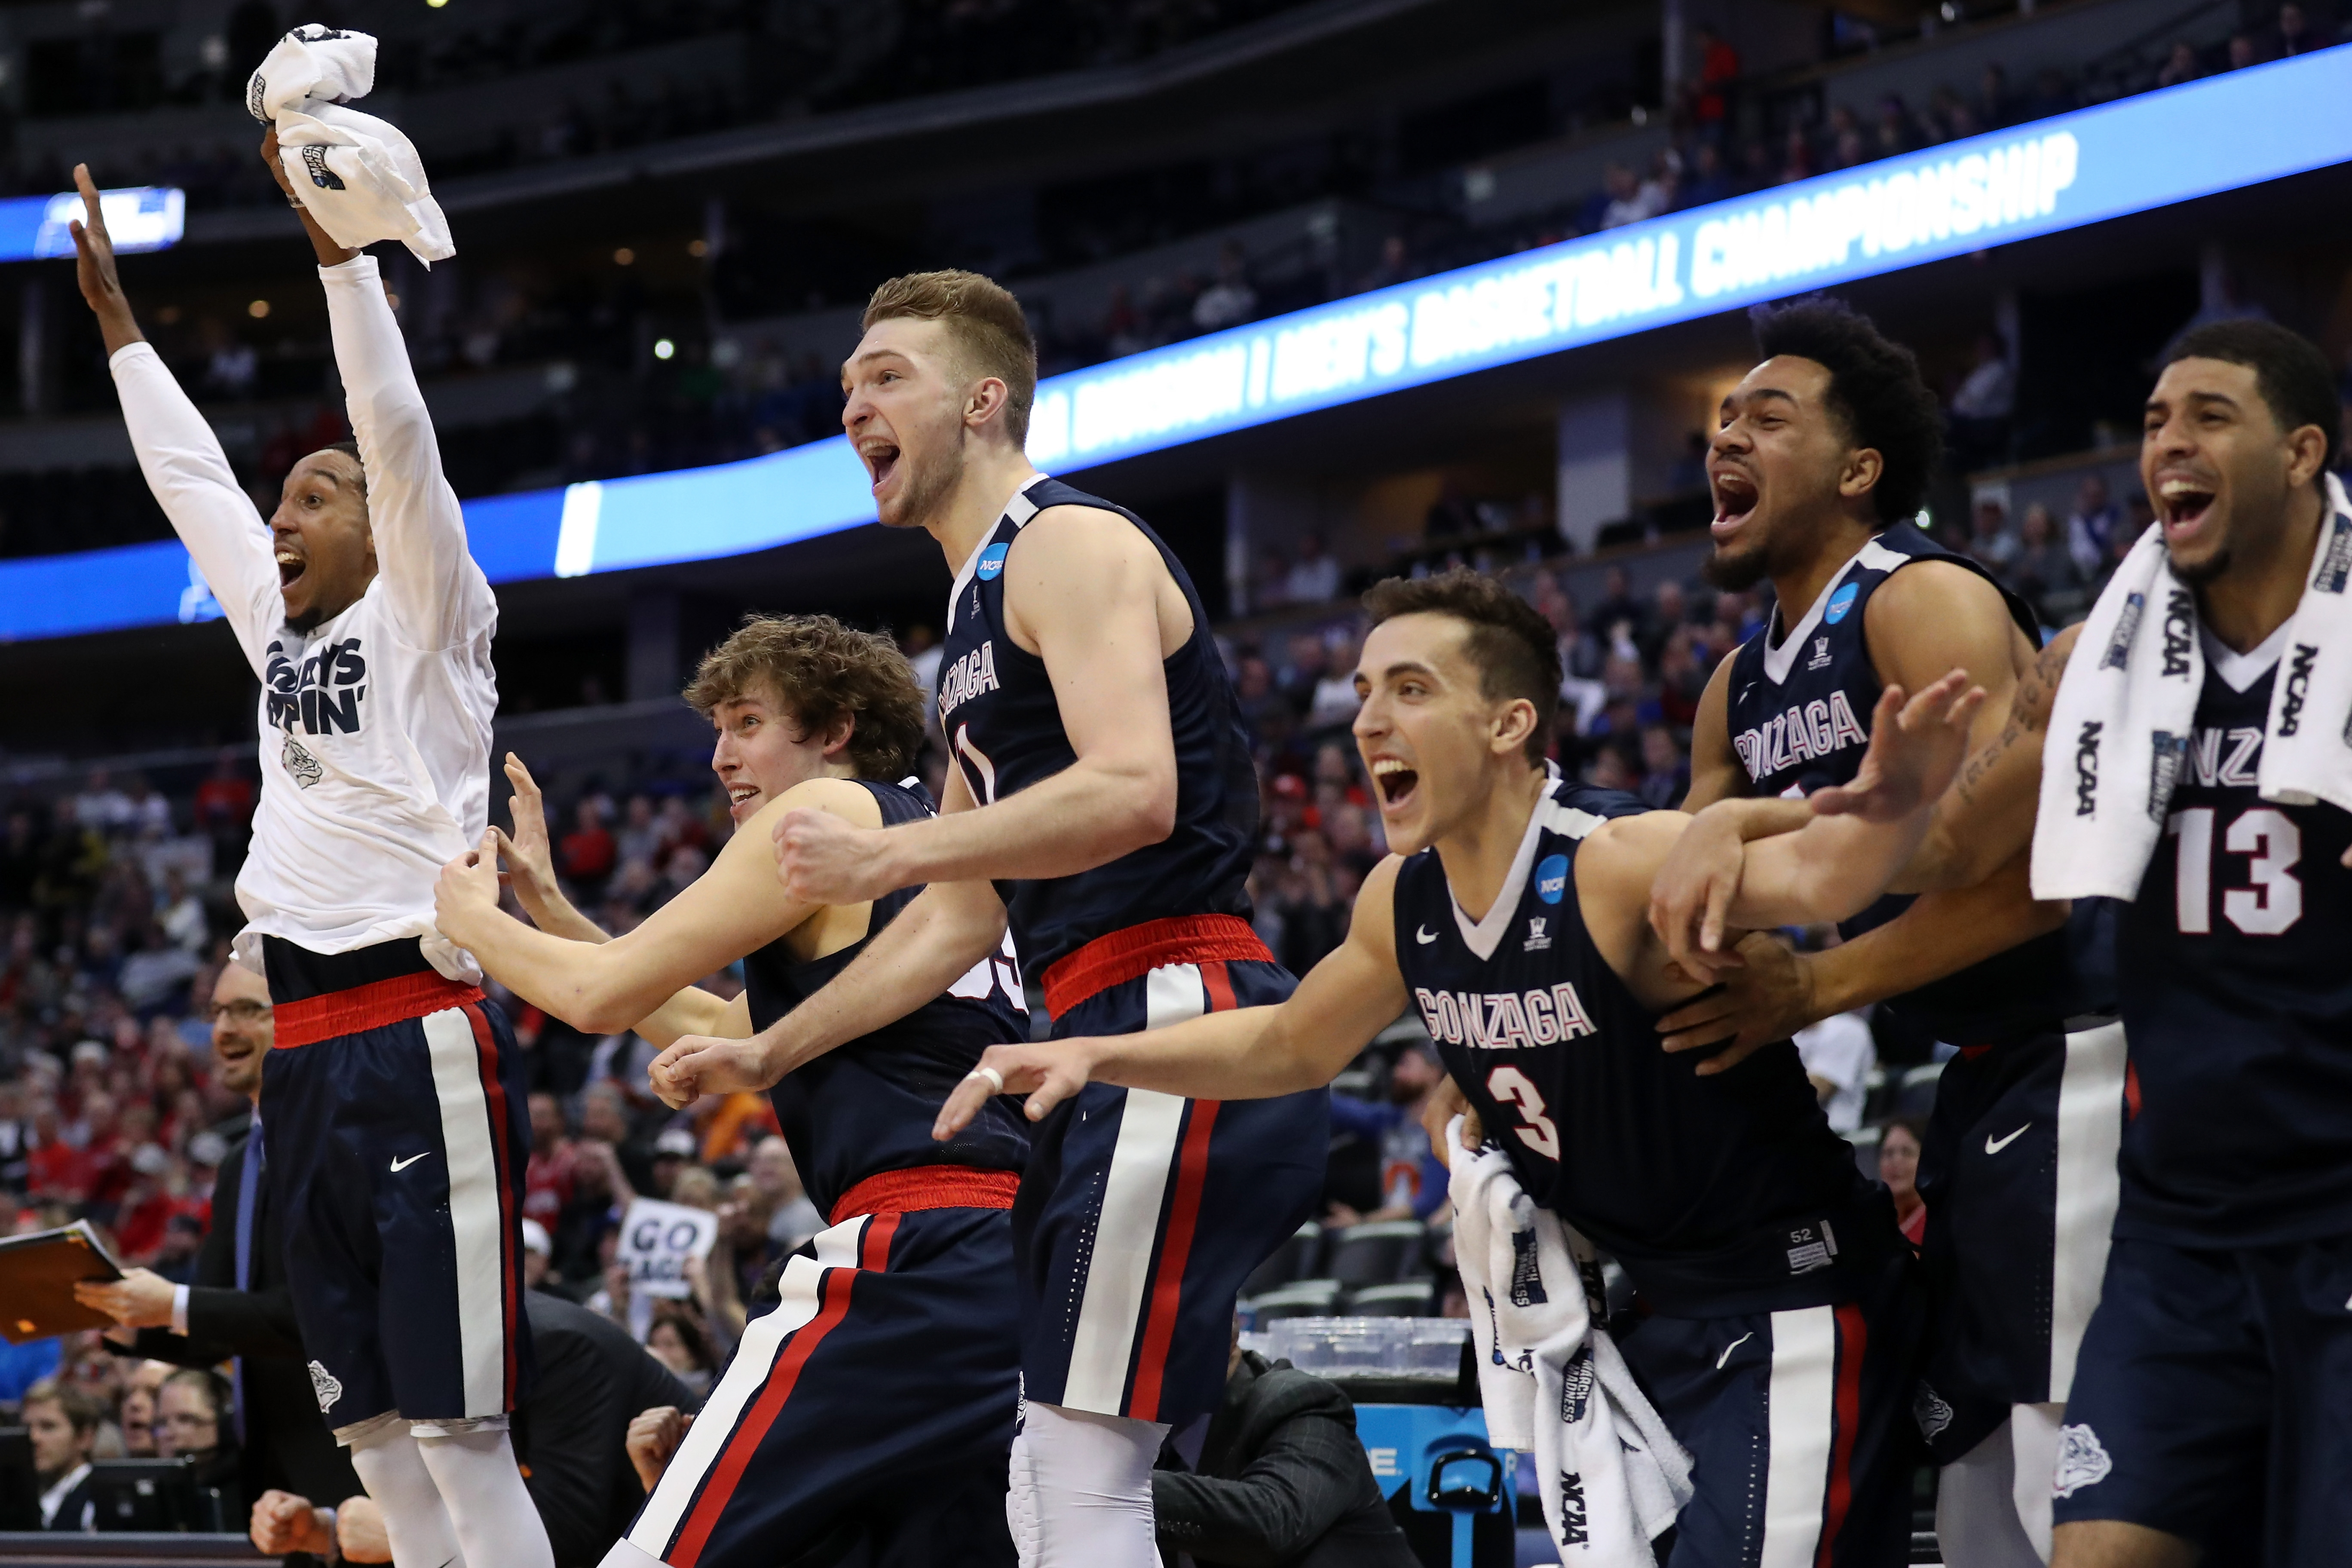 Despite being an 11th-seed, Gonzaga can't be considered a Cinderella story, it's made the NCAA Tournament every year since 1999.